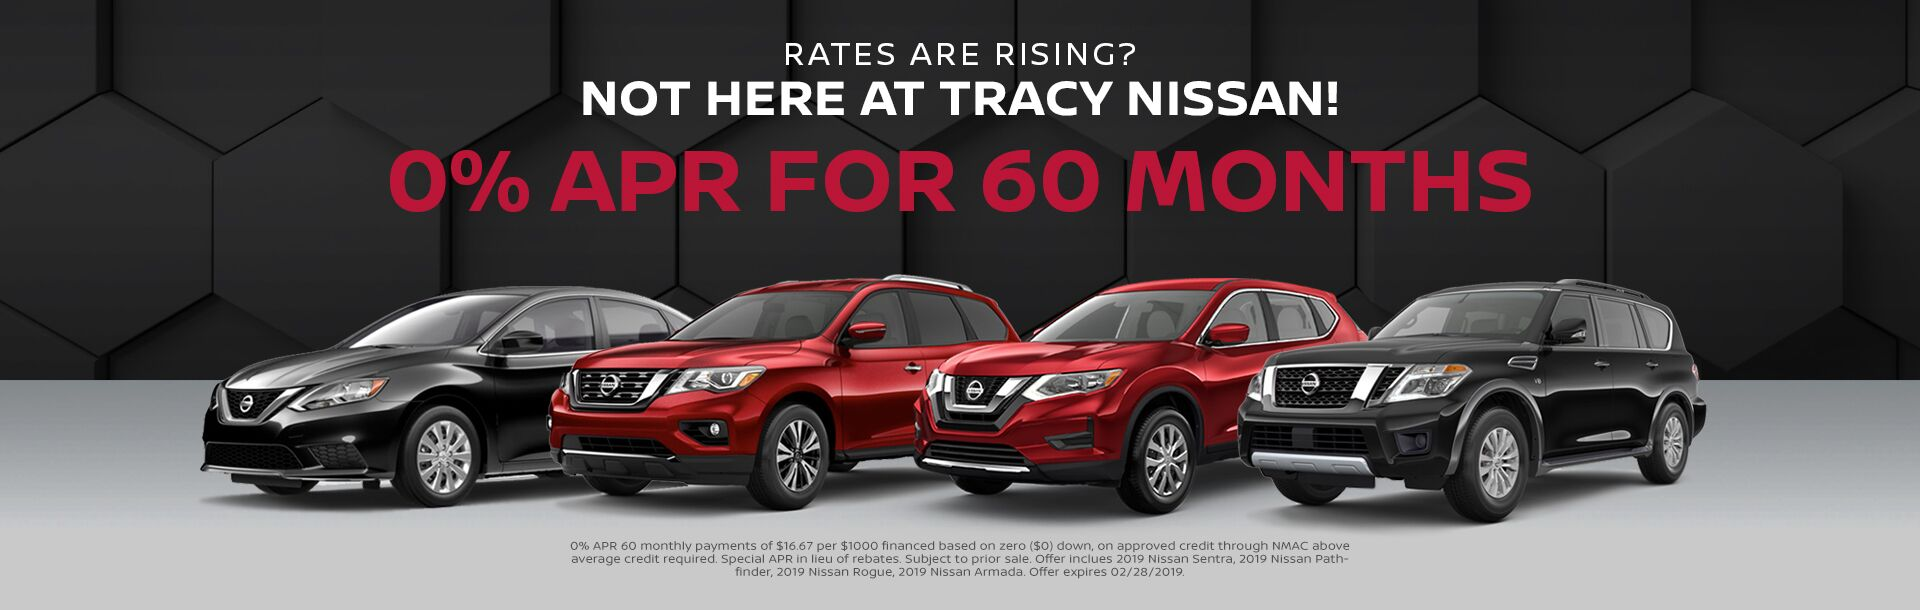 Offers at Tracy Nissan in Tracy, CA